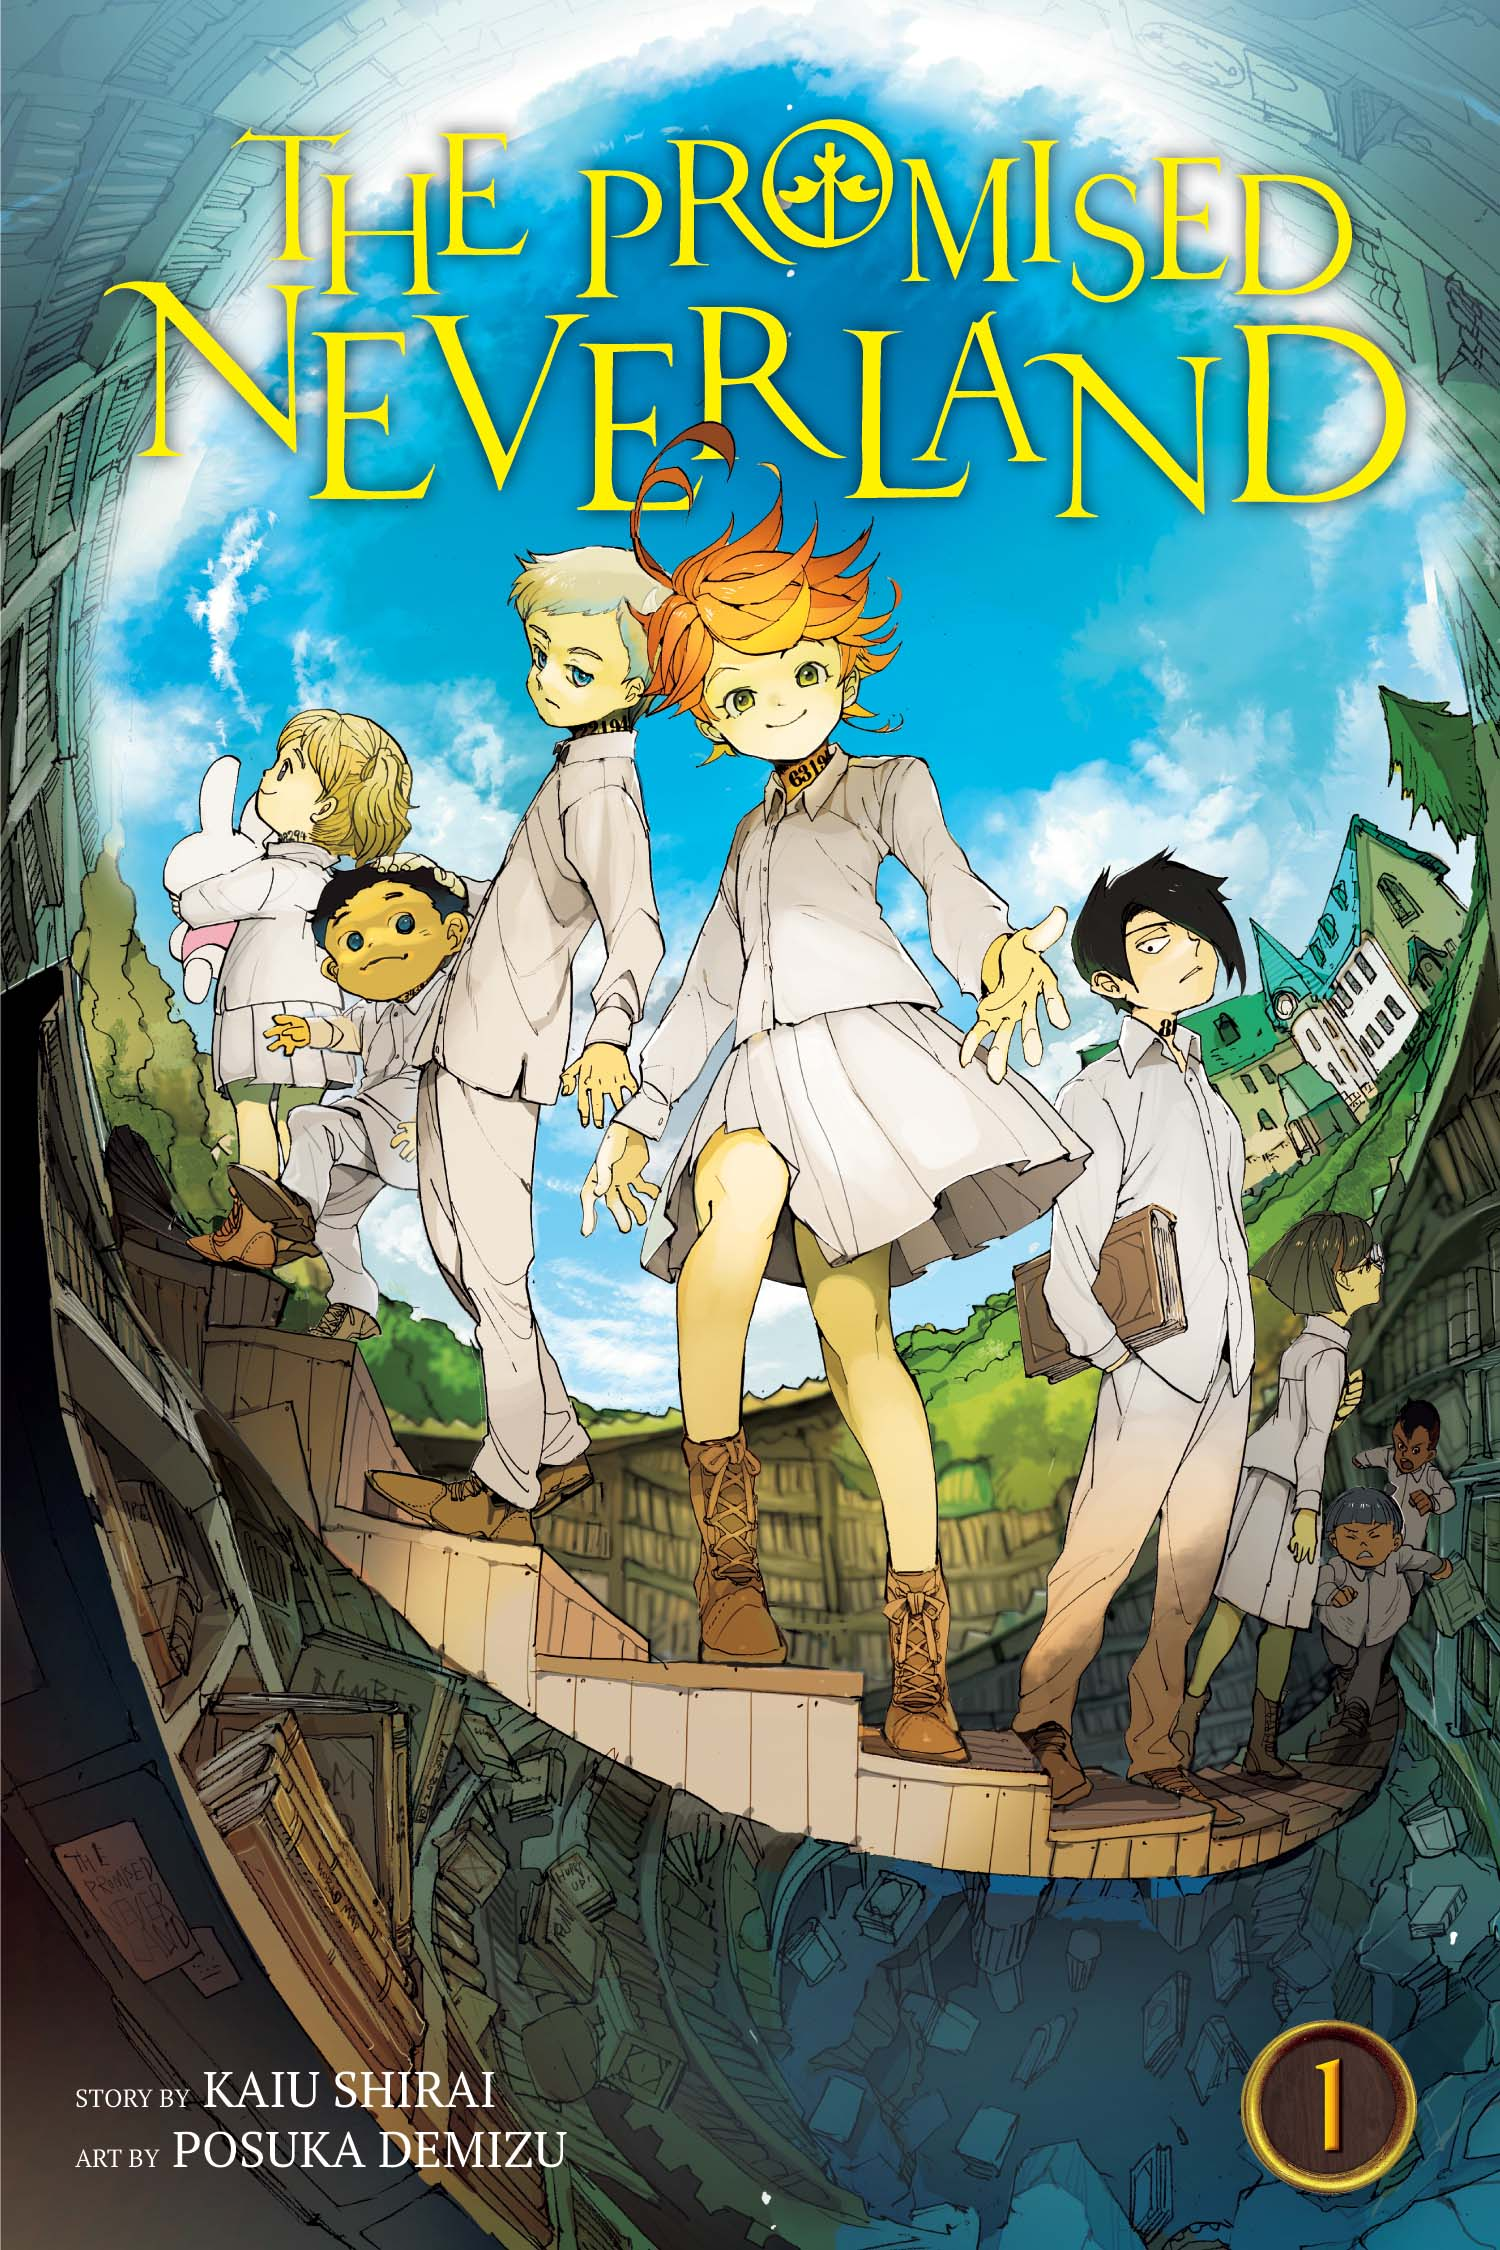 The Promised Neverland: Vol. 1 by Kaiu Shirai | SLJ Review